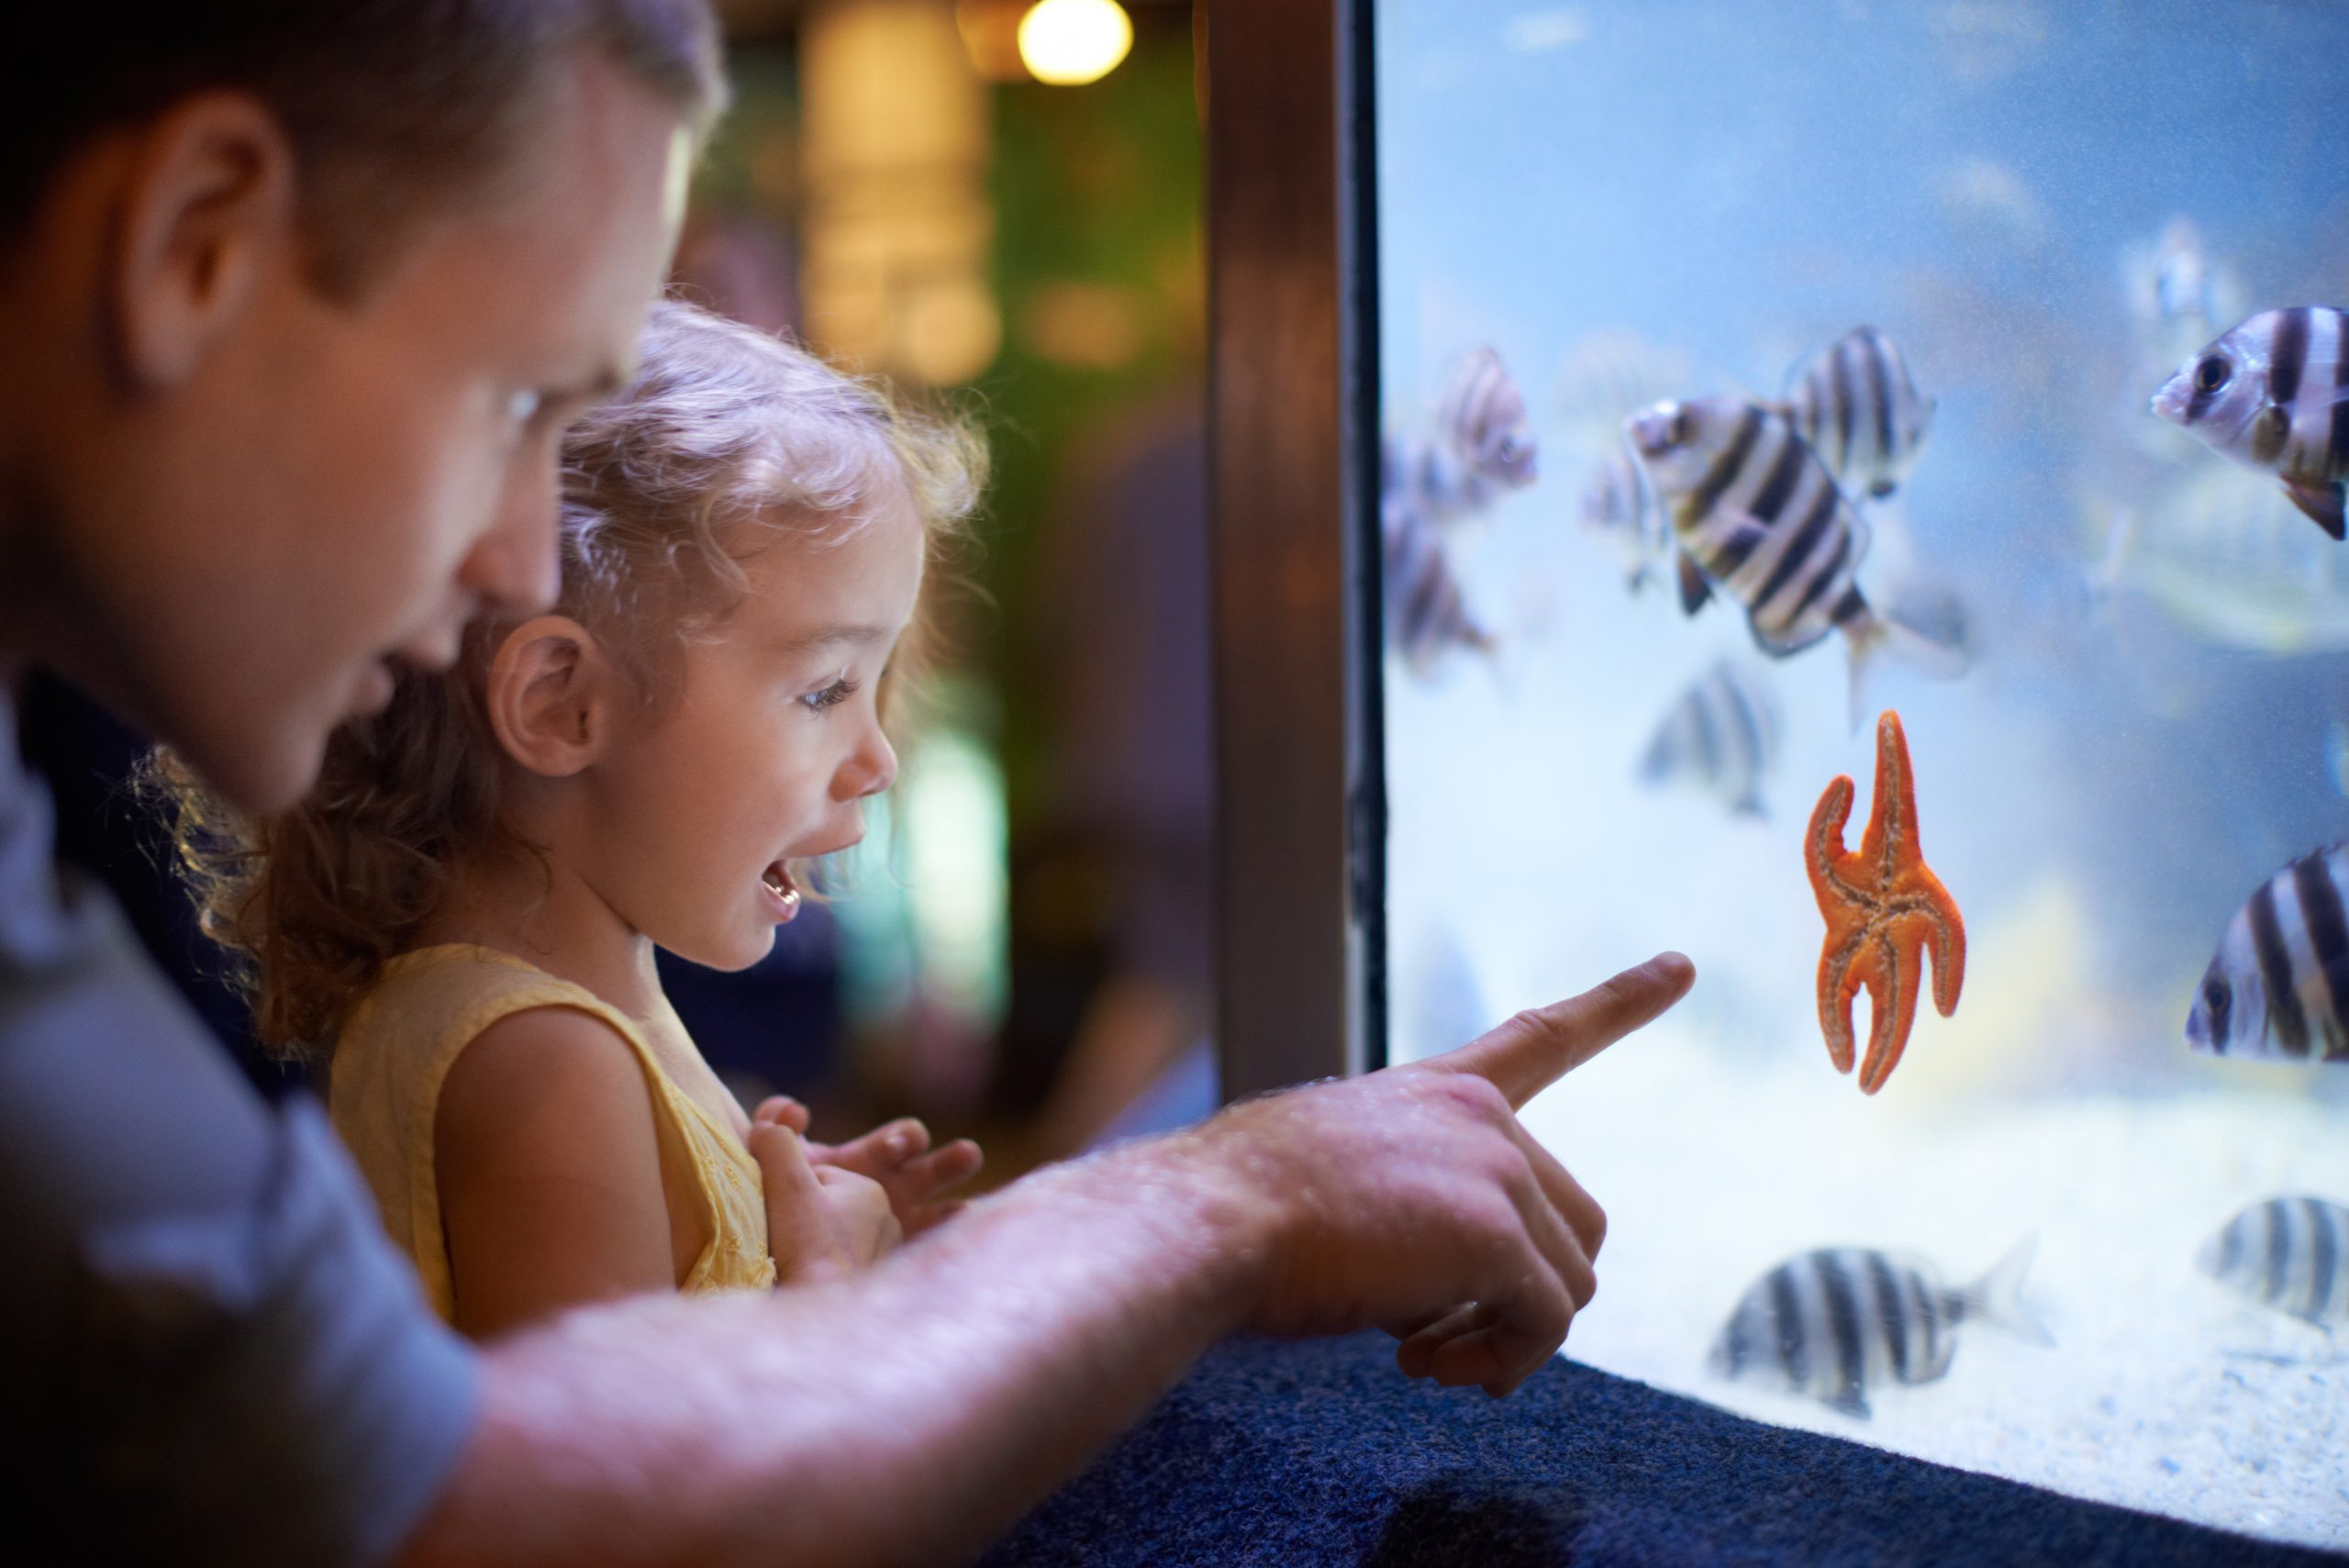 A father and daughter spend time looking at the fish in an aquarium.